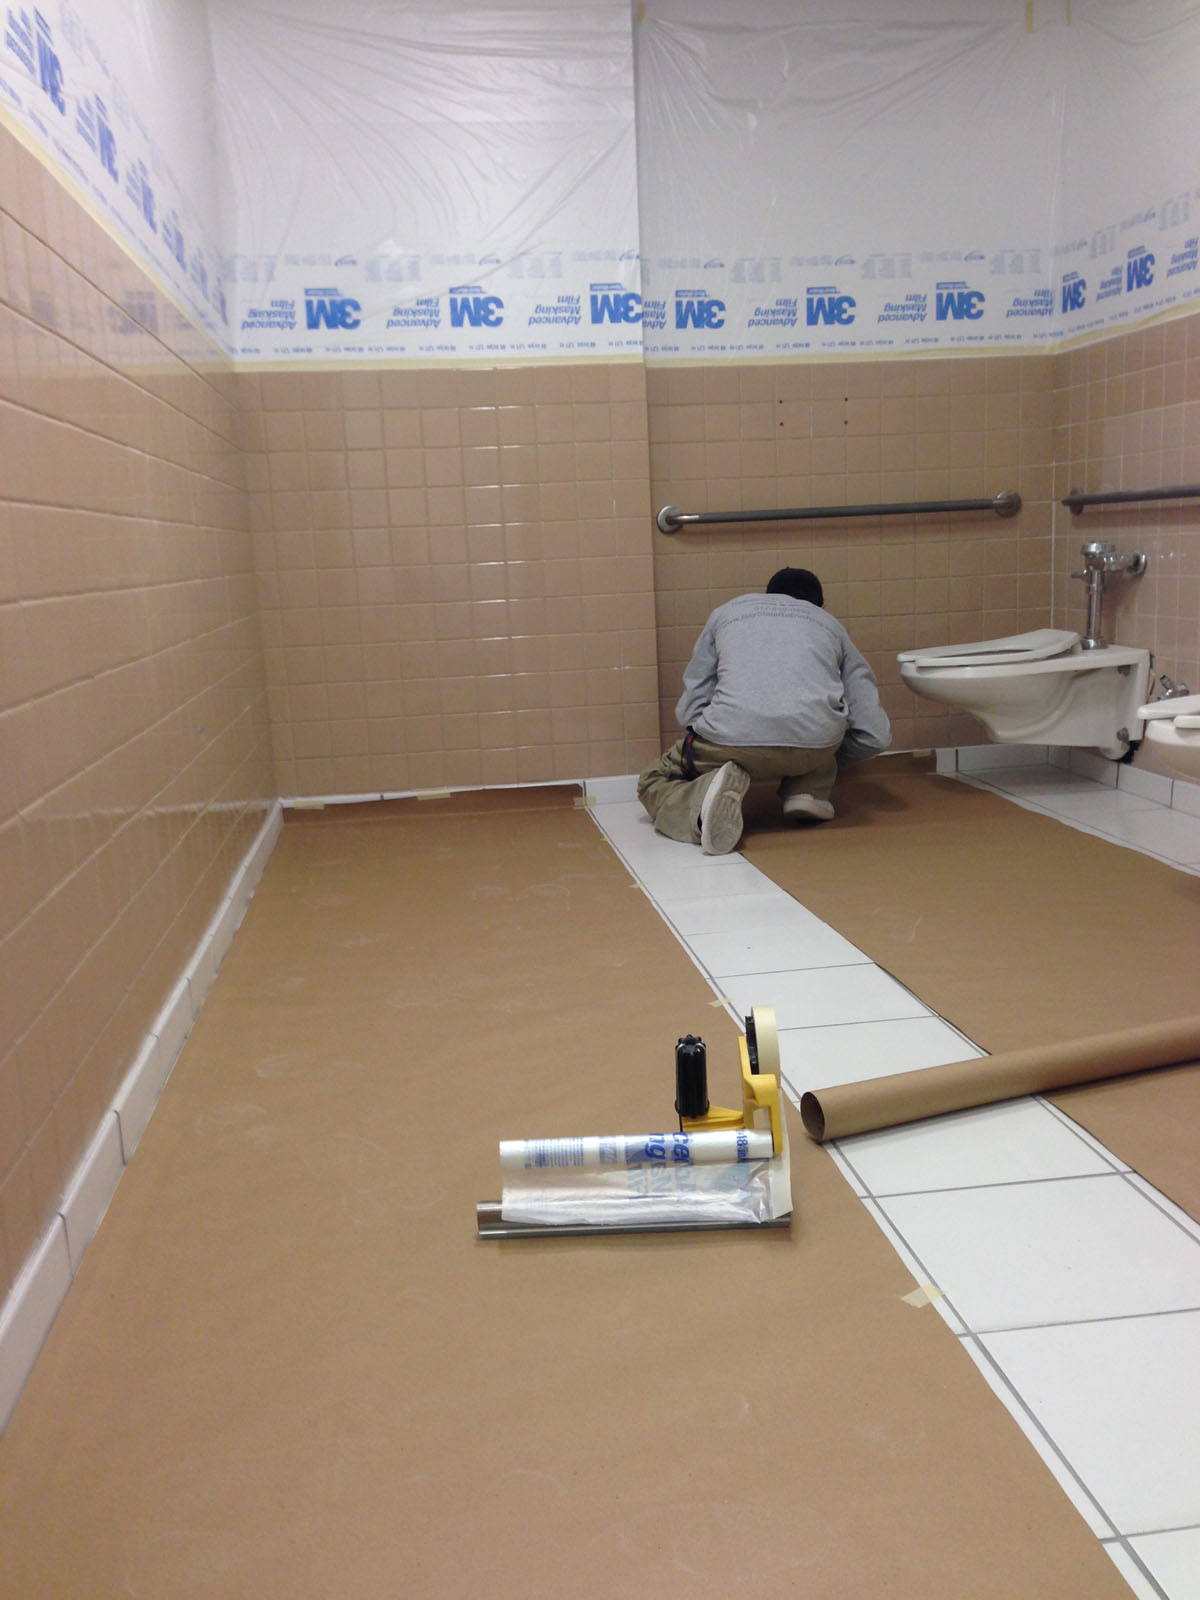 60 State St. Boston - Commercial Bathroom Refinishing - Before